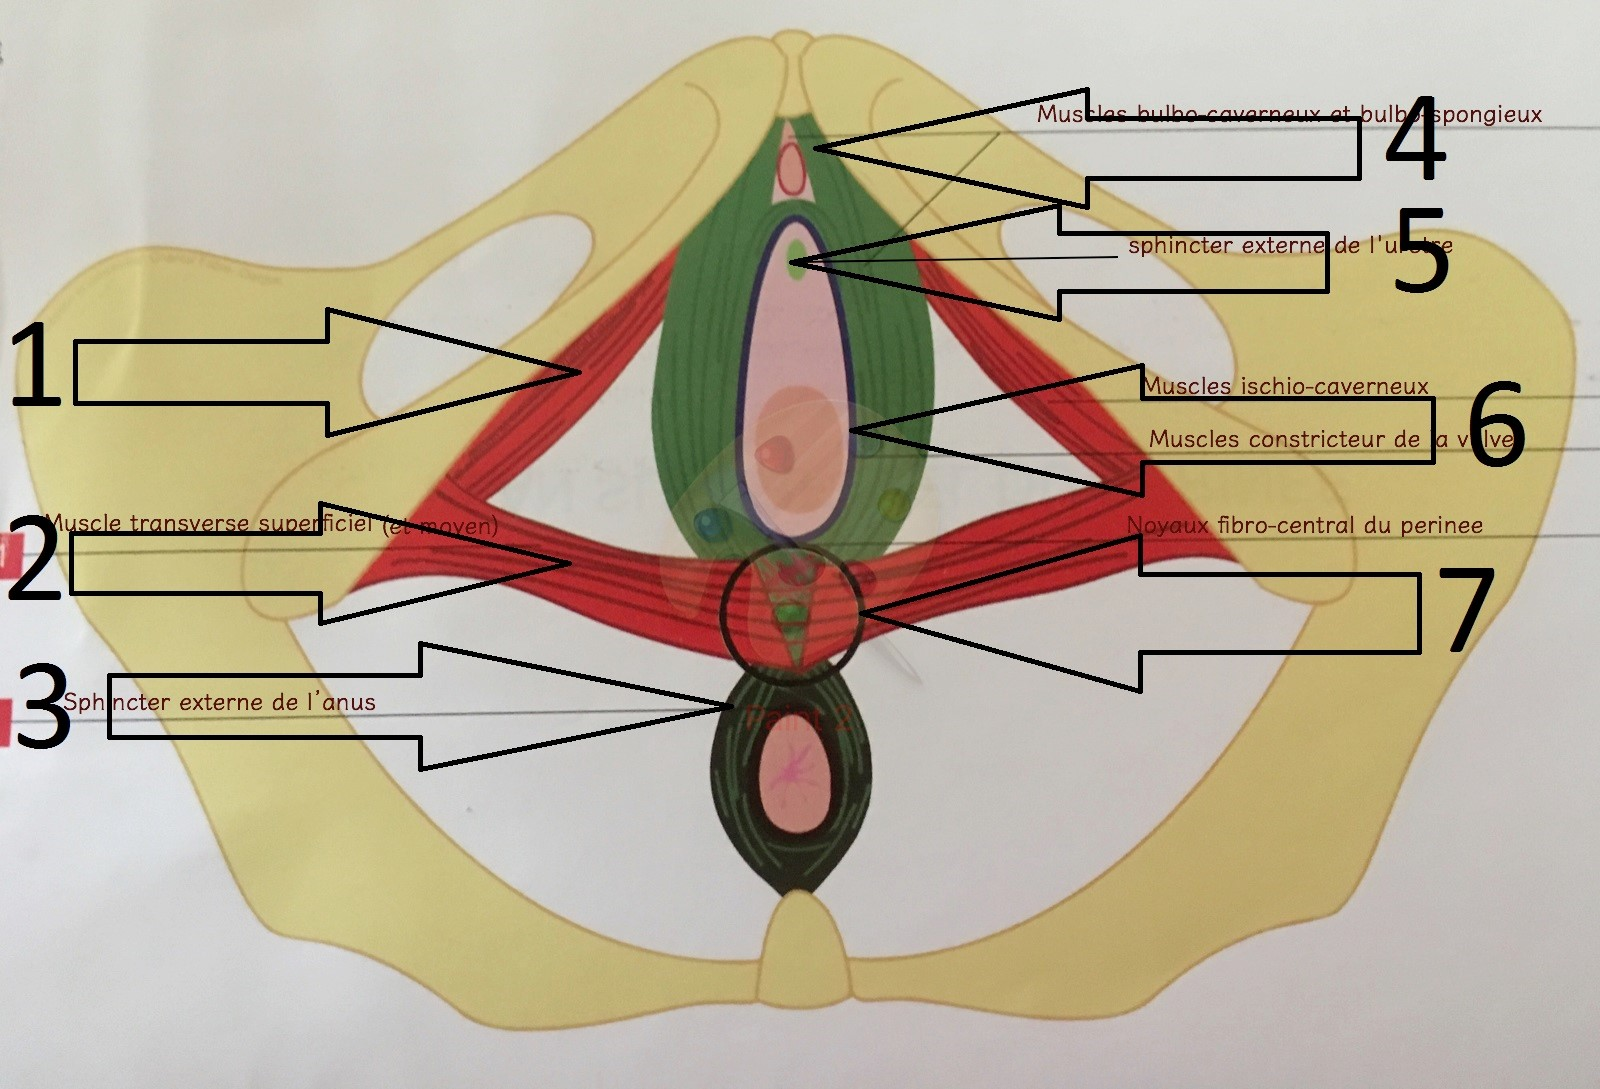 Superficial and intermediate pelvic floor muscles